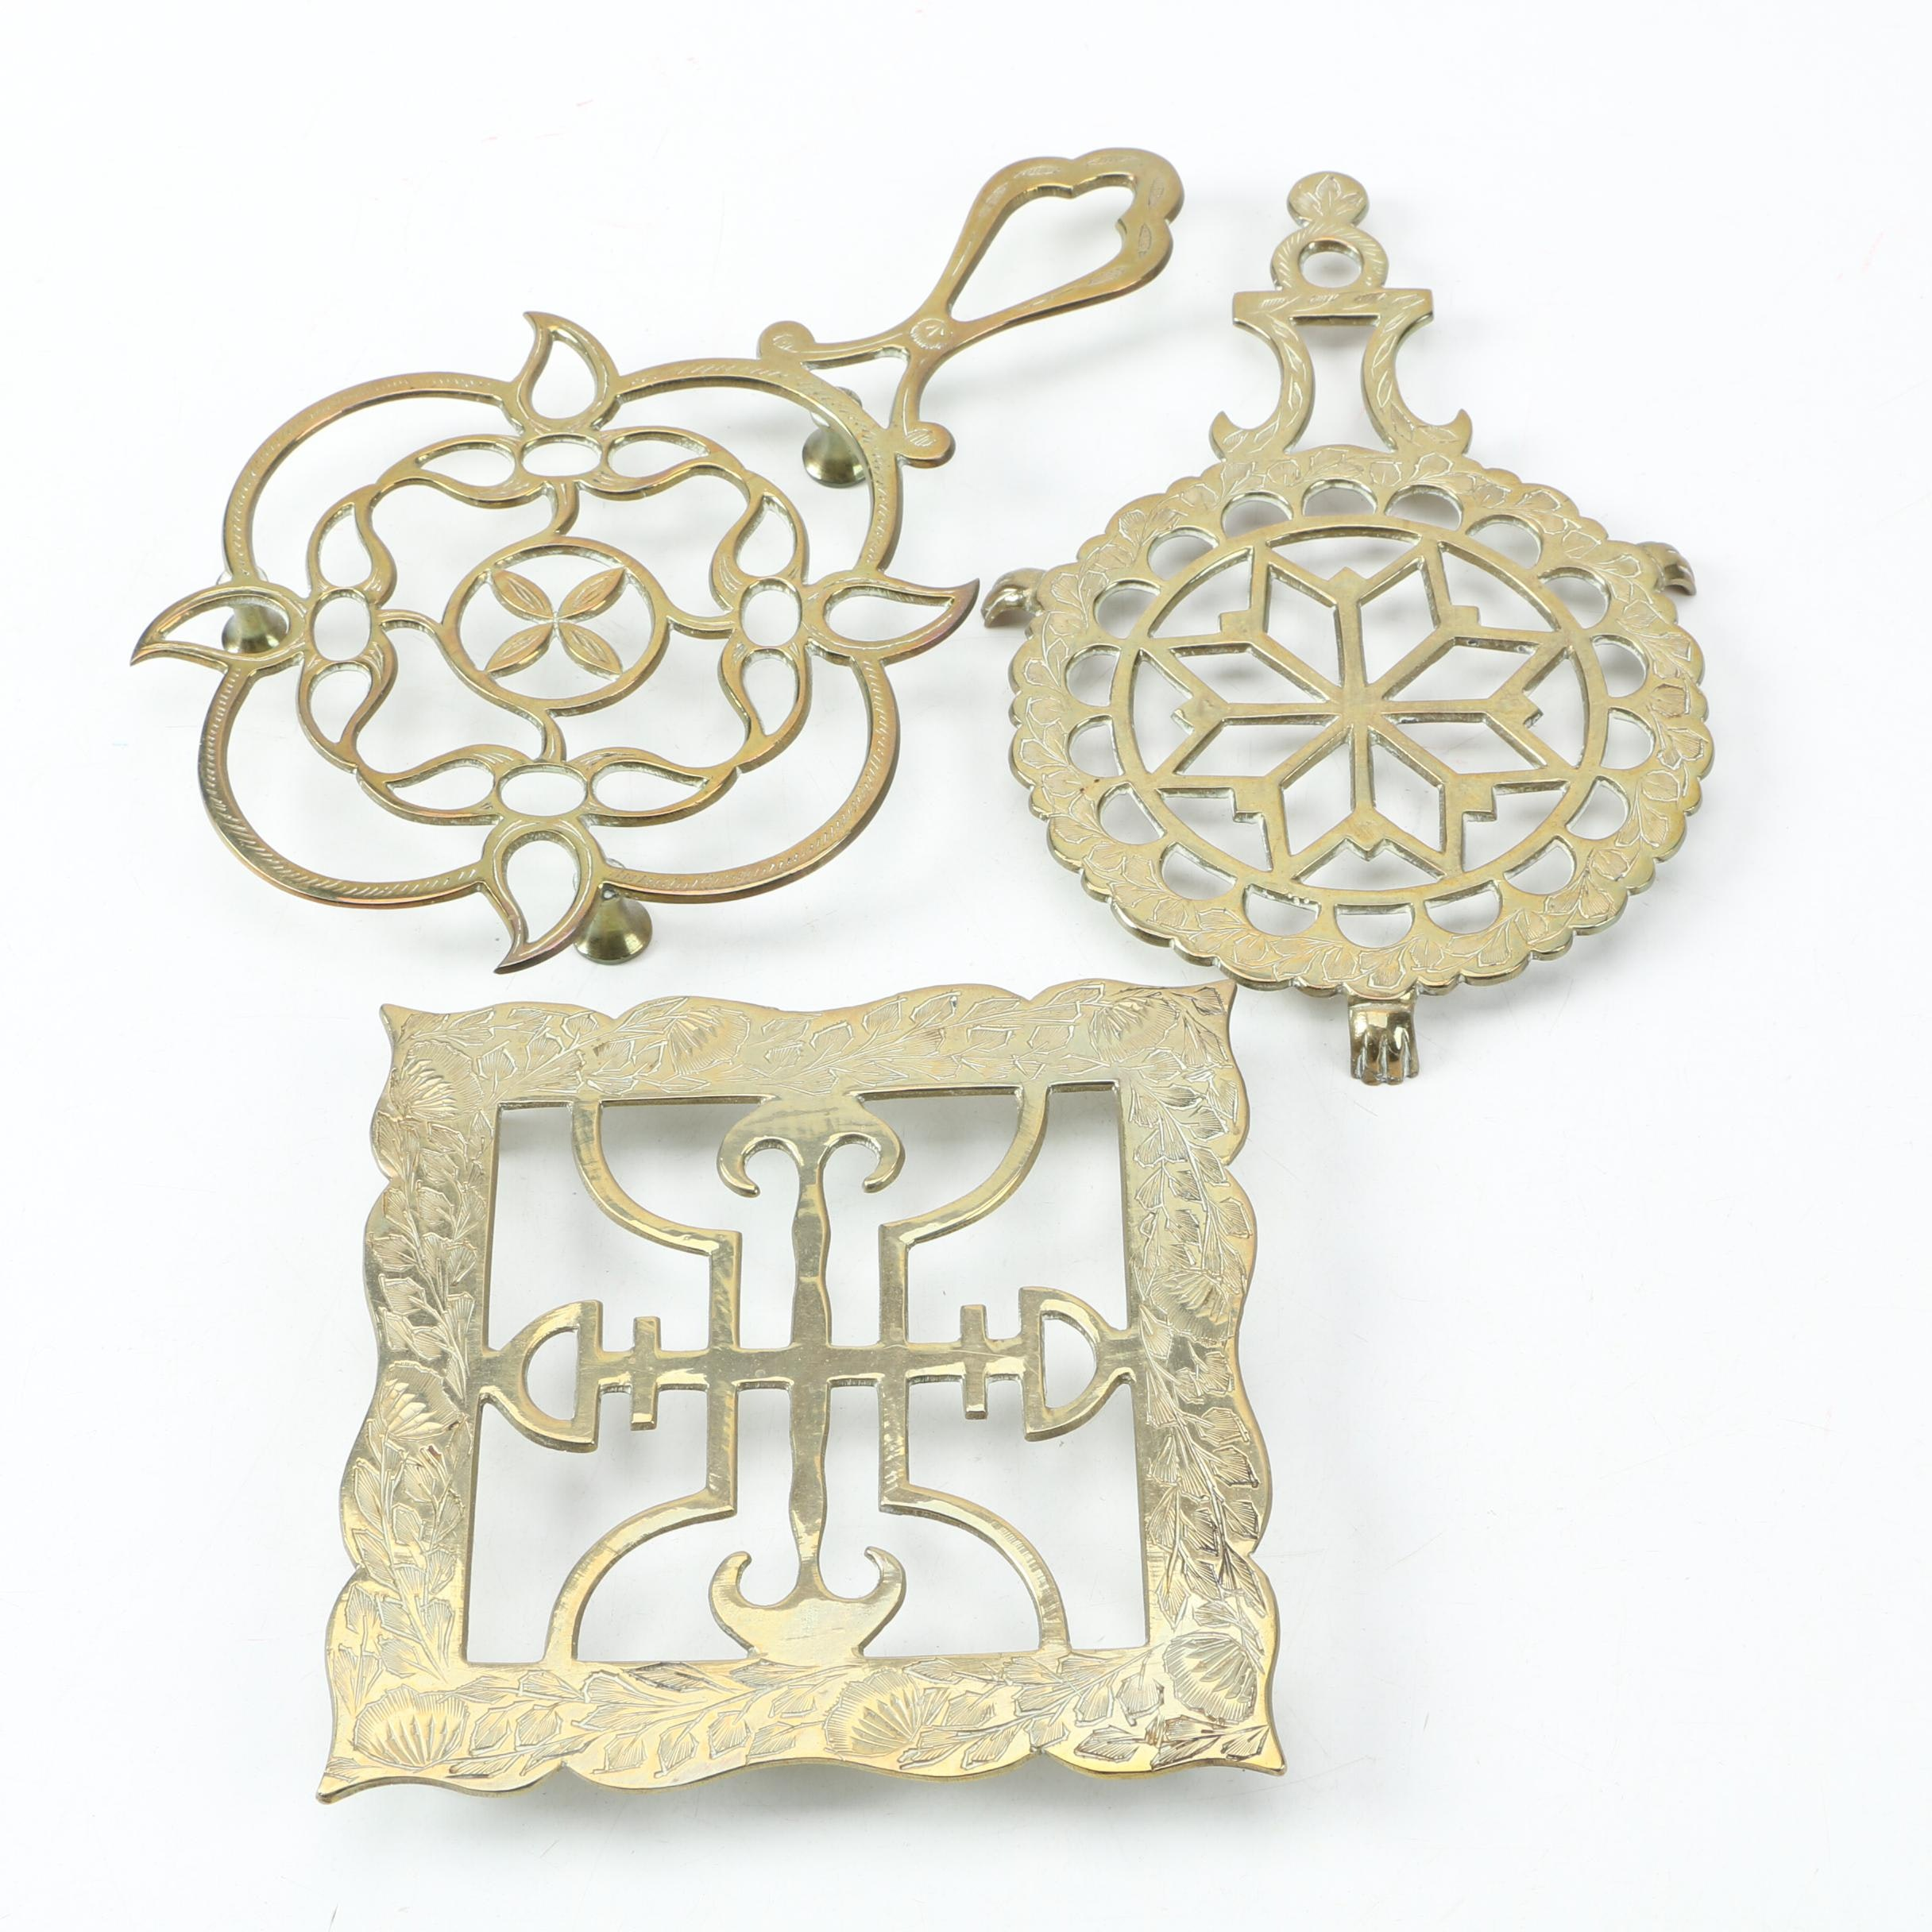 Brass Trivets Made in India